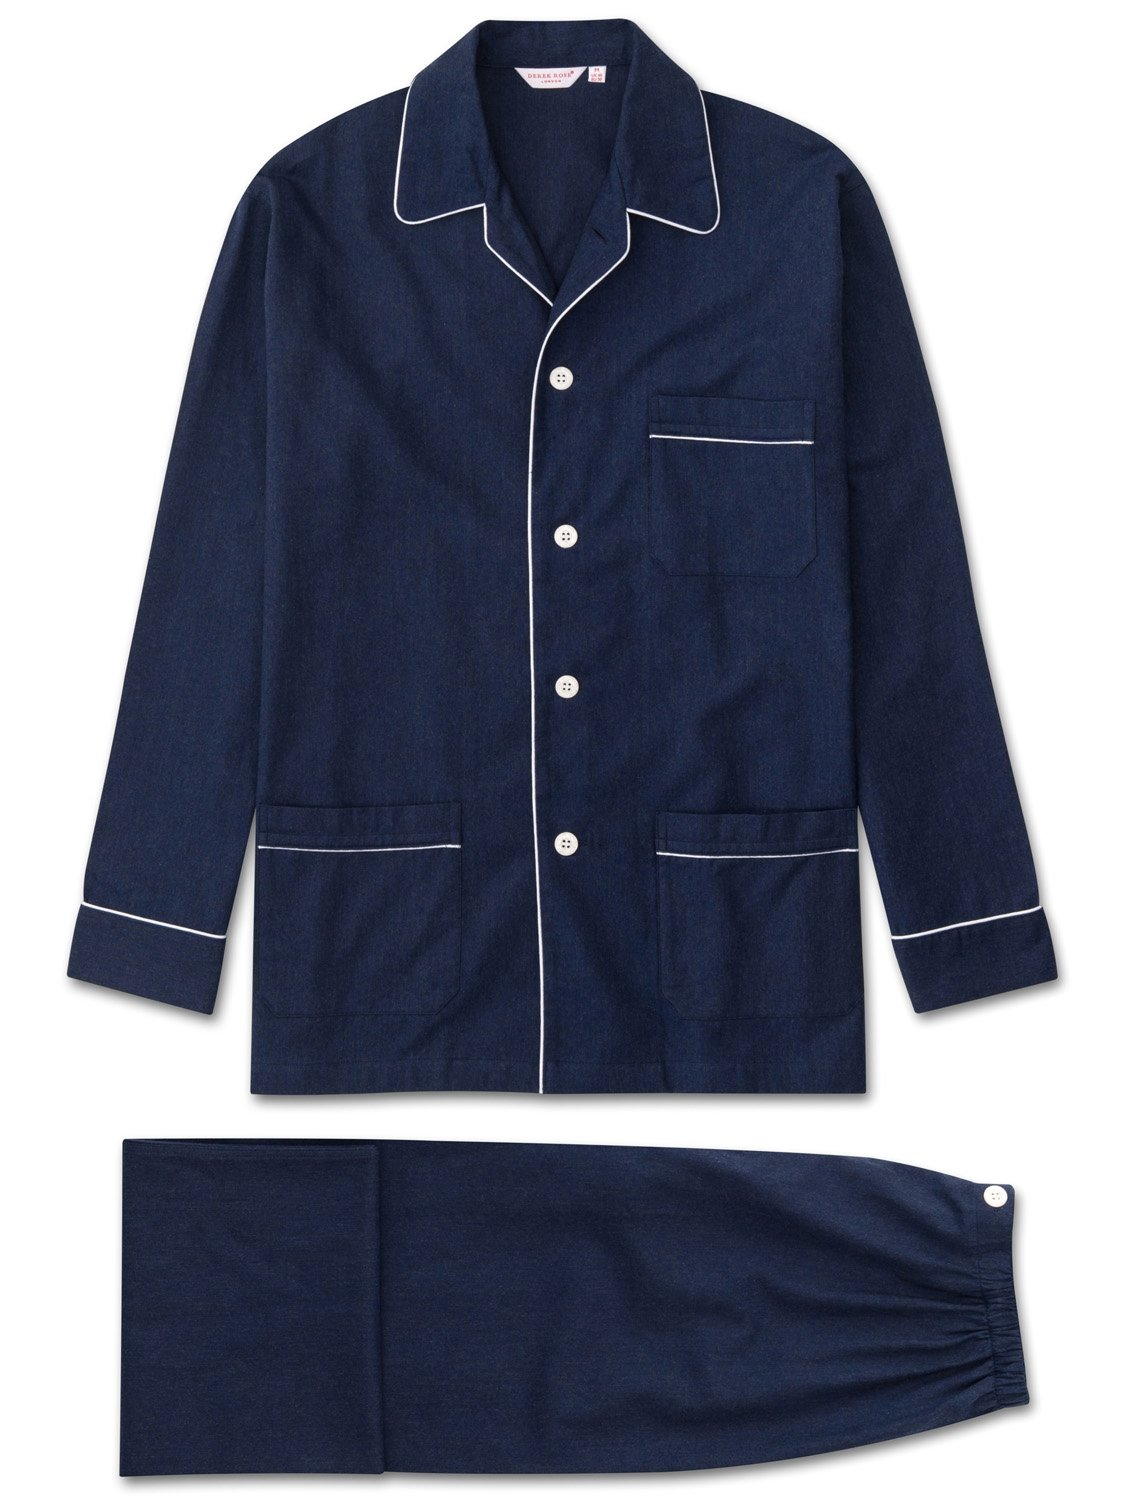 Men's Classic Fit Piped Pyjamas Balmoral 3 Brushed Cotton Navy